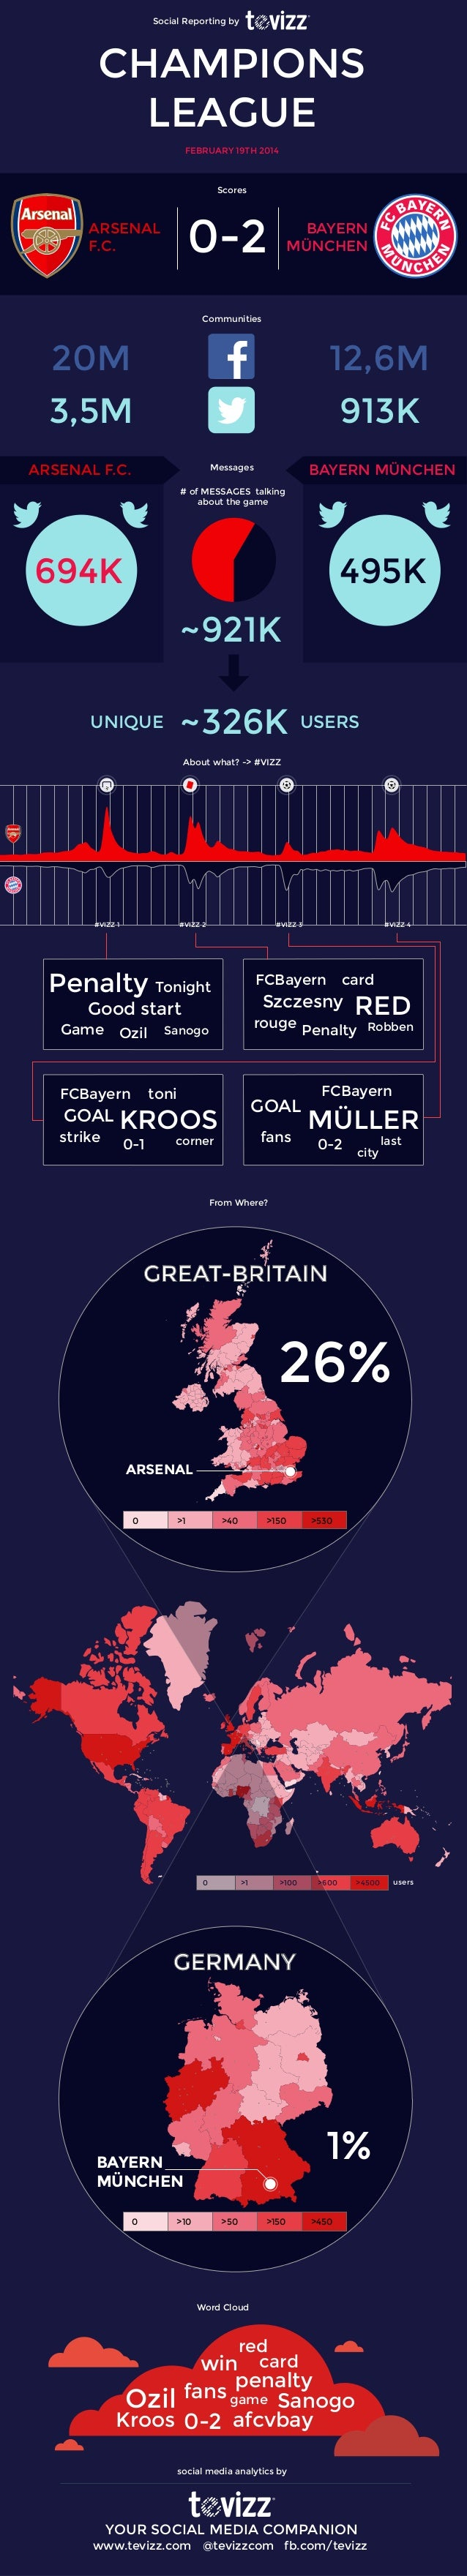 Social Reporting by  CHAMPIONS LEAGUE FEBRUARY 19TH 2014  Scores  0-2  ARSENAL F.C.  BAYERN MÜNCHEN  Communities  20M 3,5M...